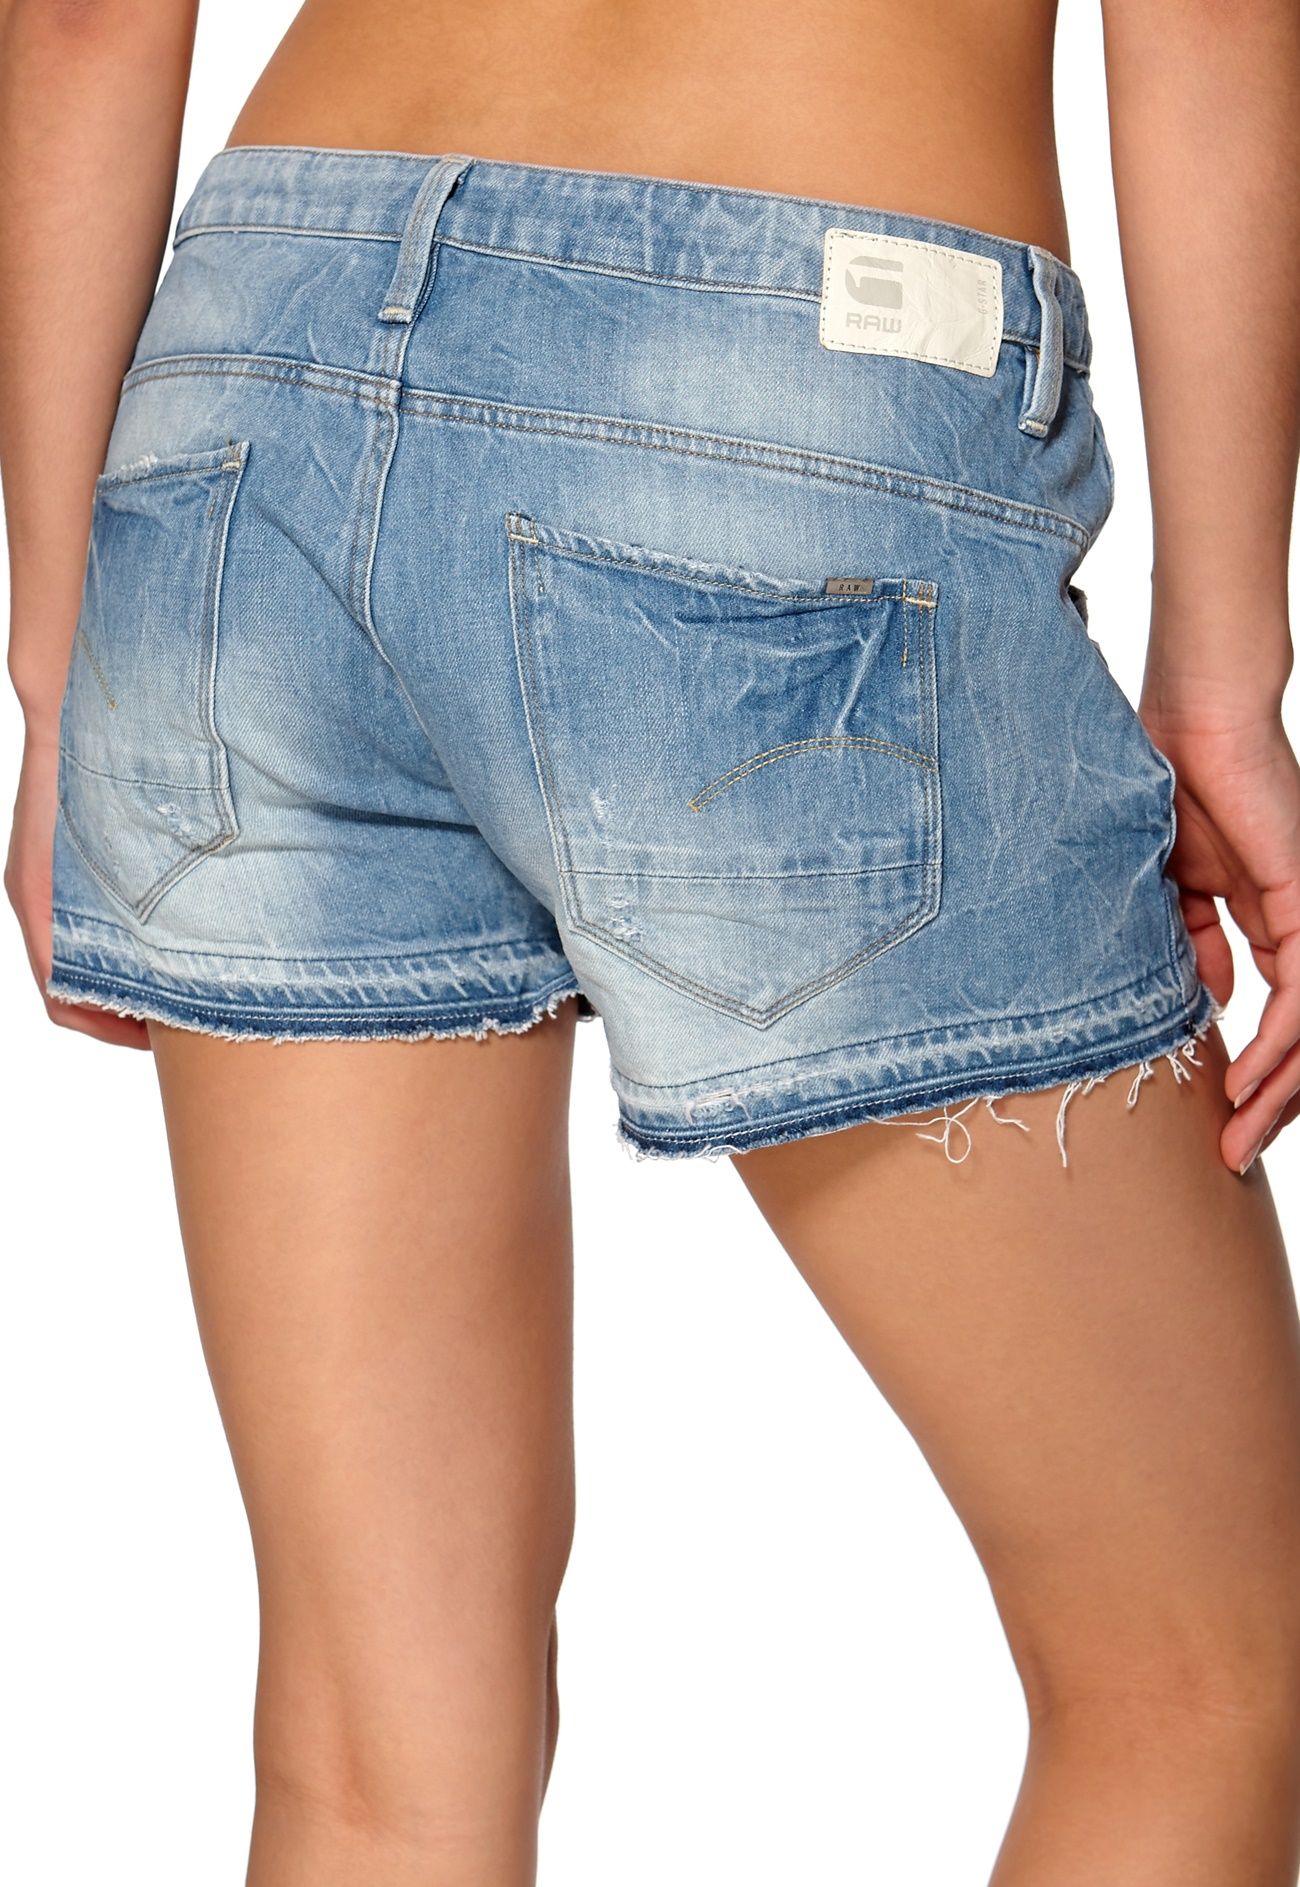 Womens shorts for work & fun: High waisted and fitted shorts, sexy sports shorts, booty shorts, ripped denim, lace trim, and more.